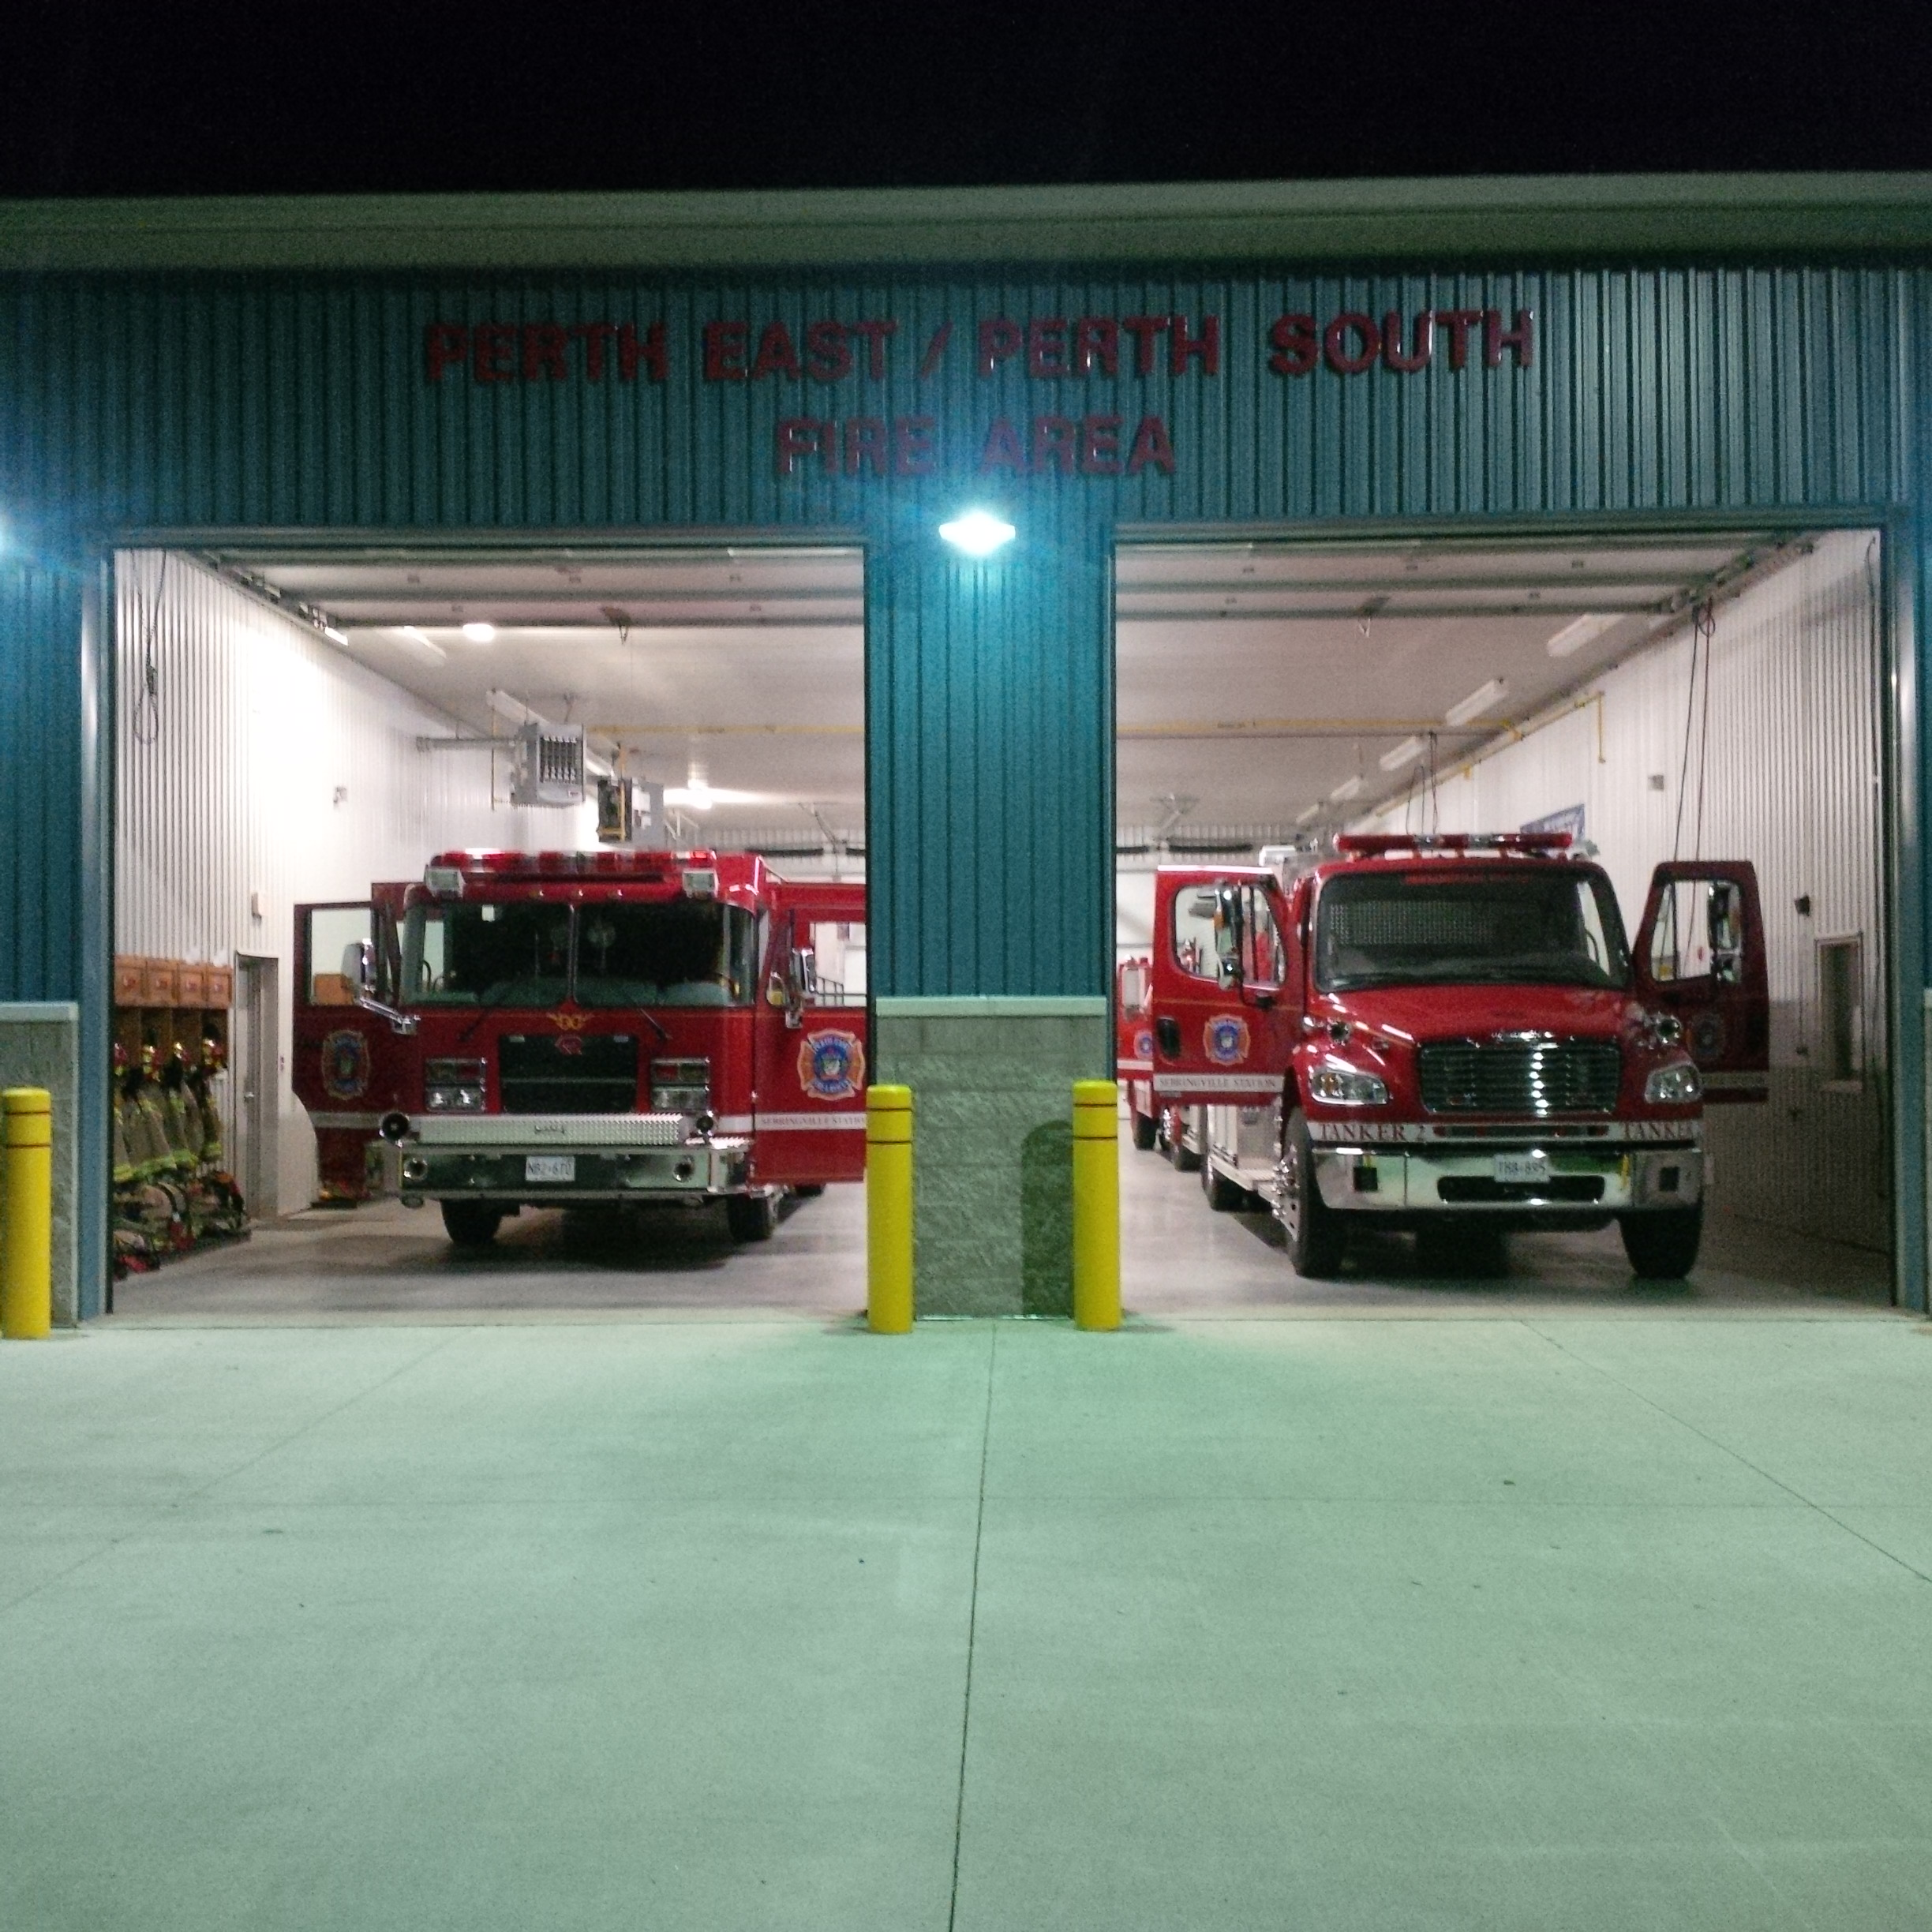 Fire station with its bay doors open and fire trucks parked inside at the Sebringville Fire Station.